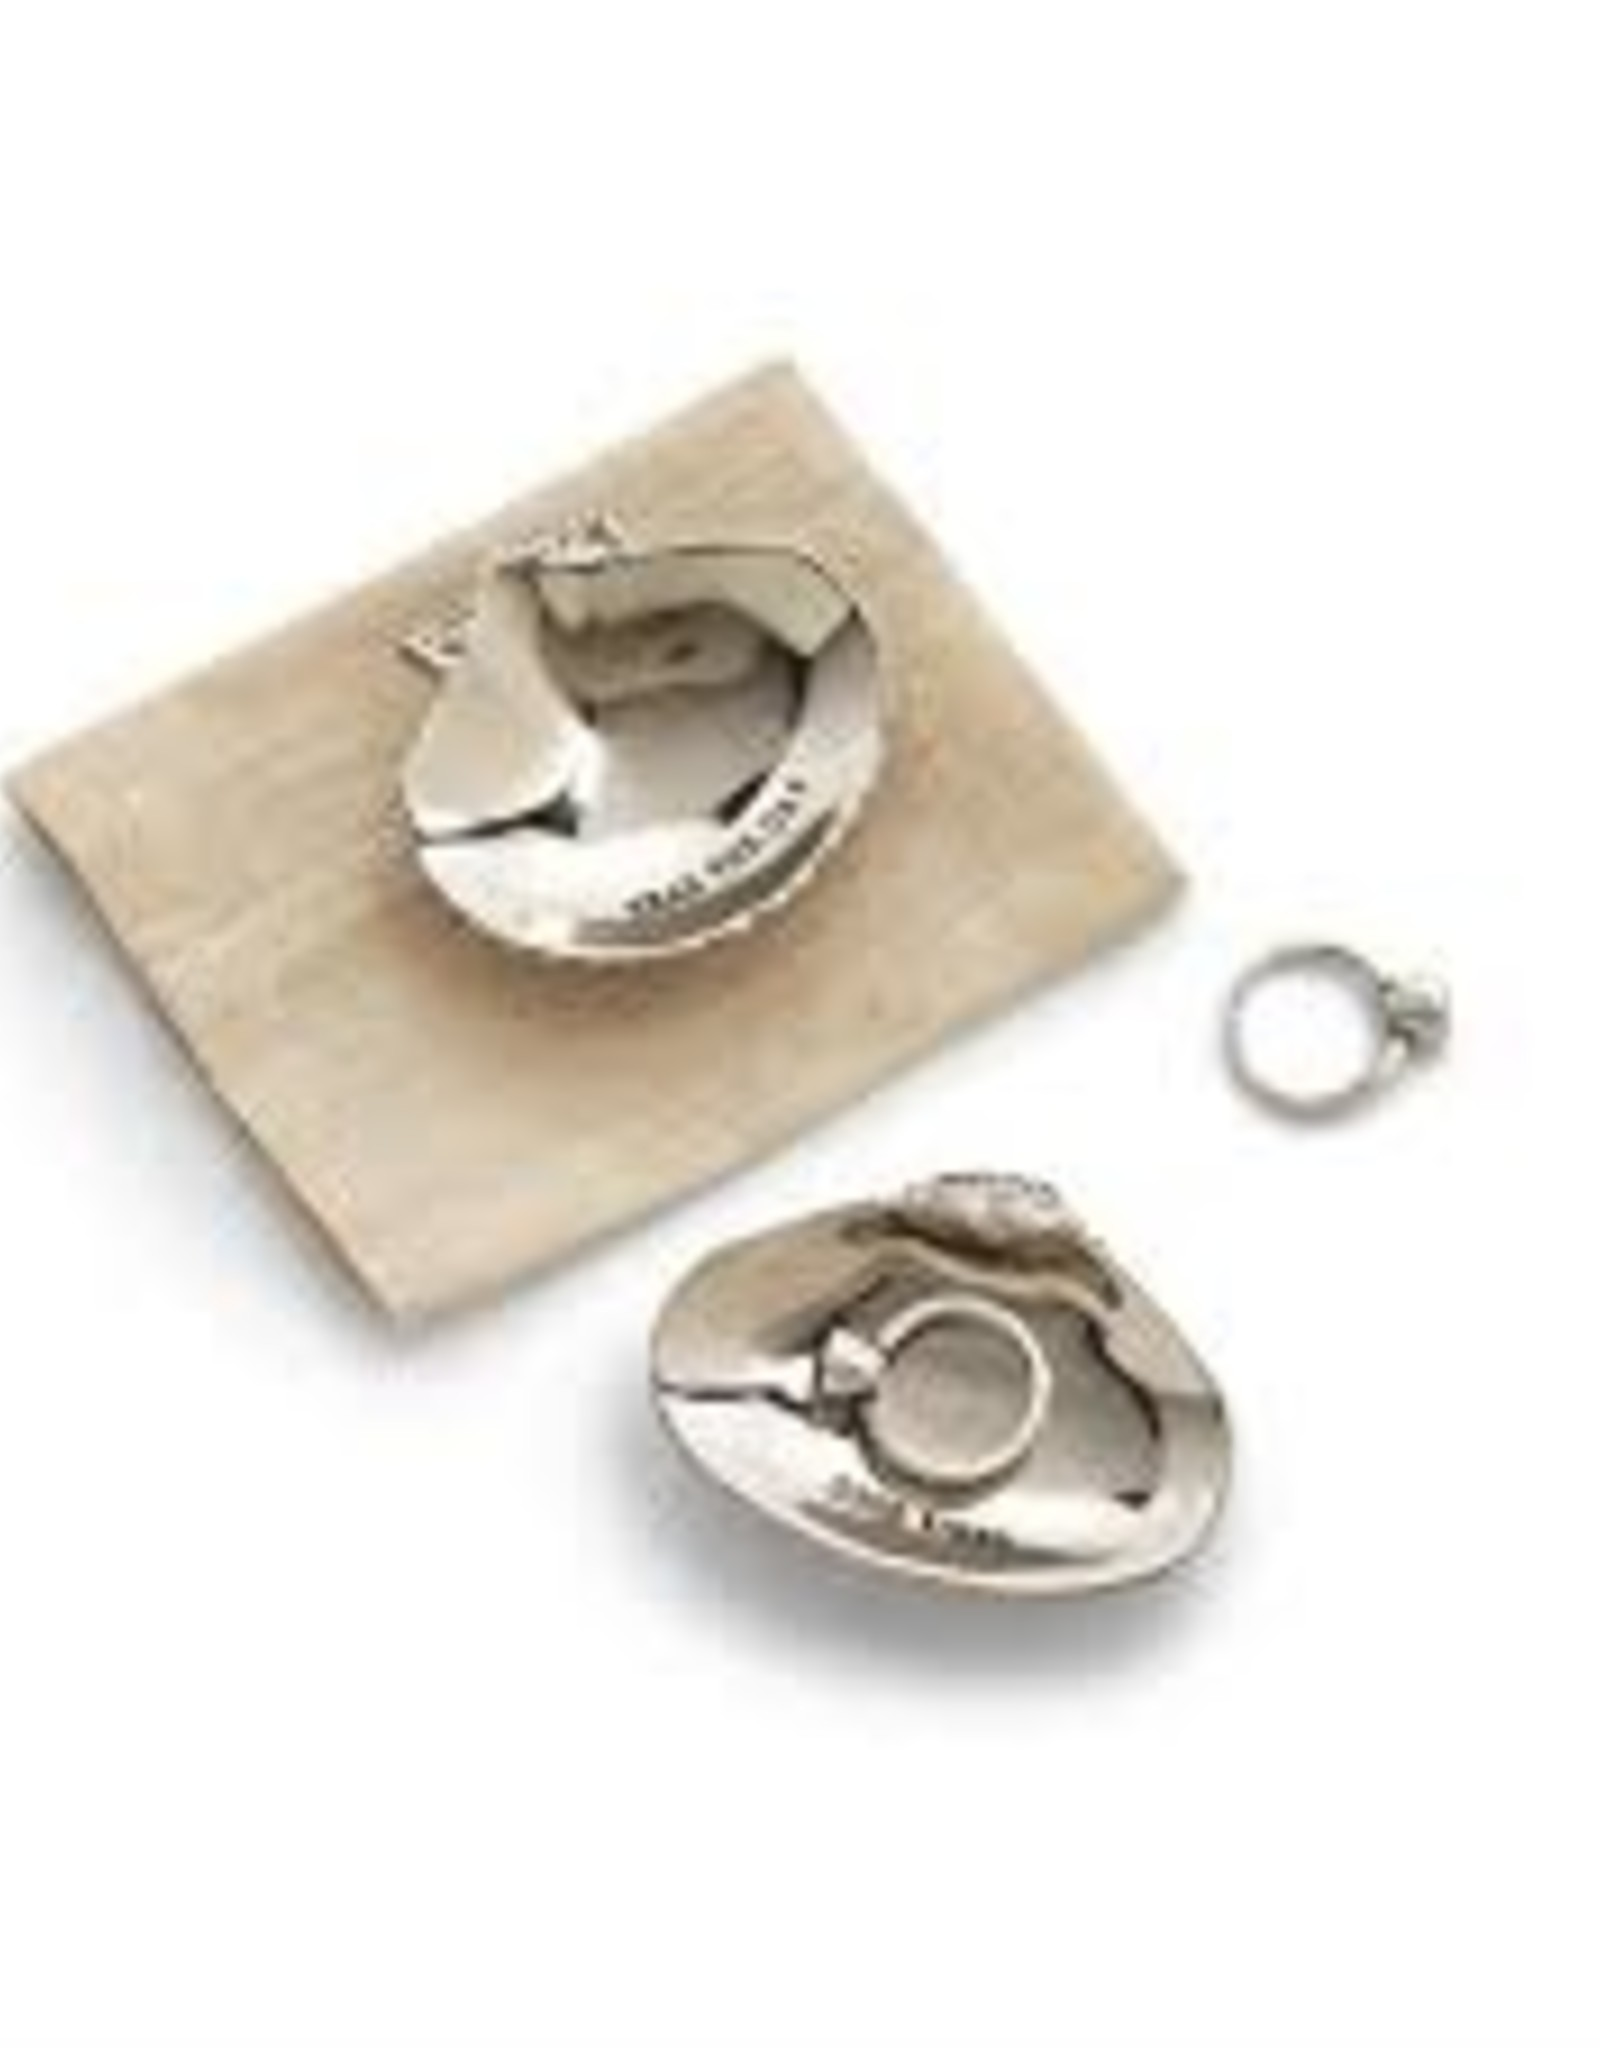 Shell Trinket Tray in Gift Pouch, Dream Big